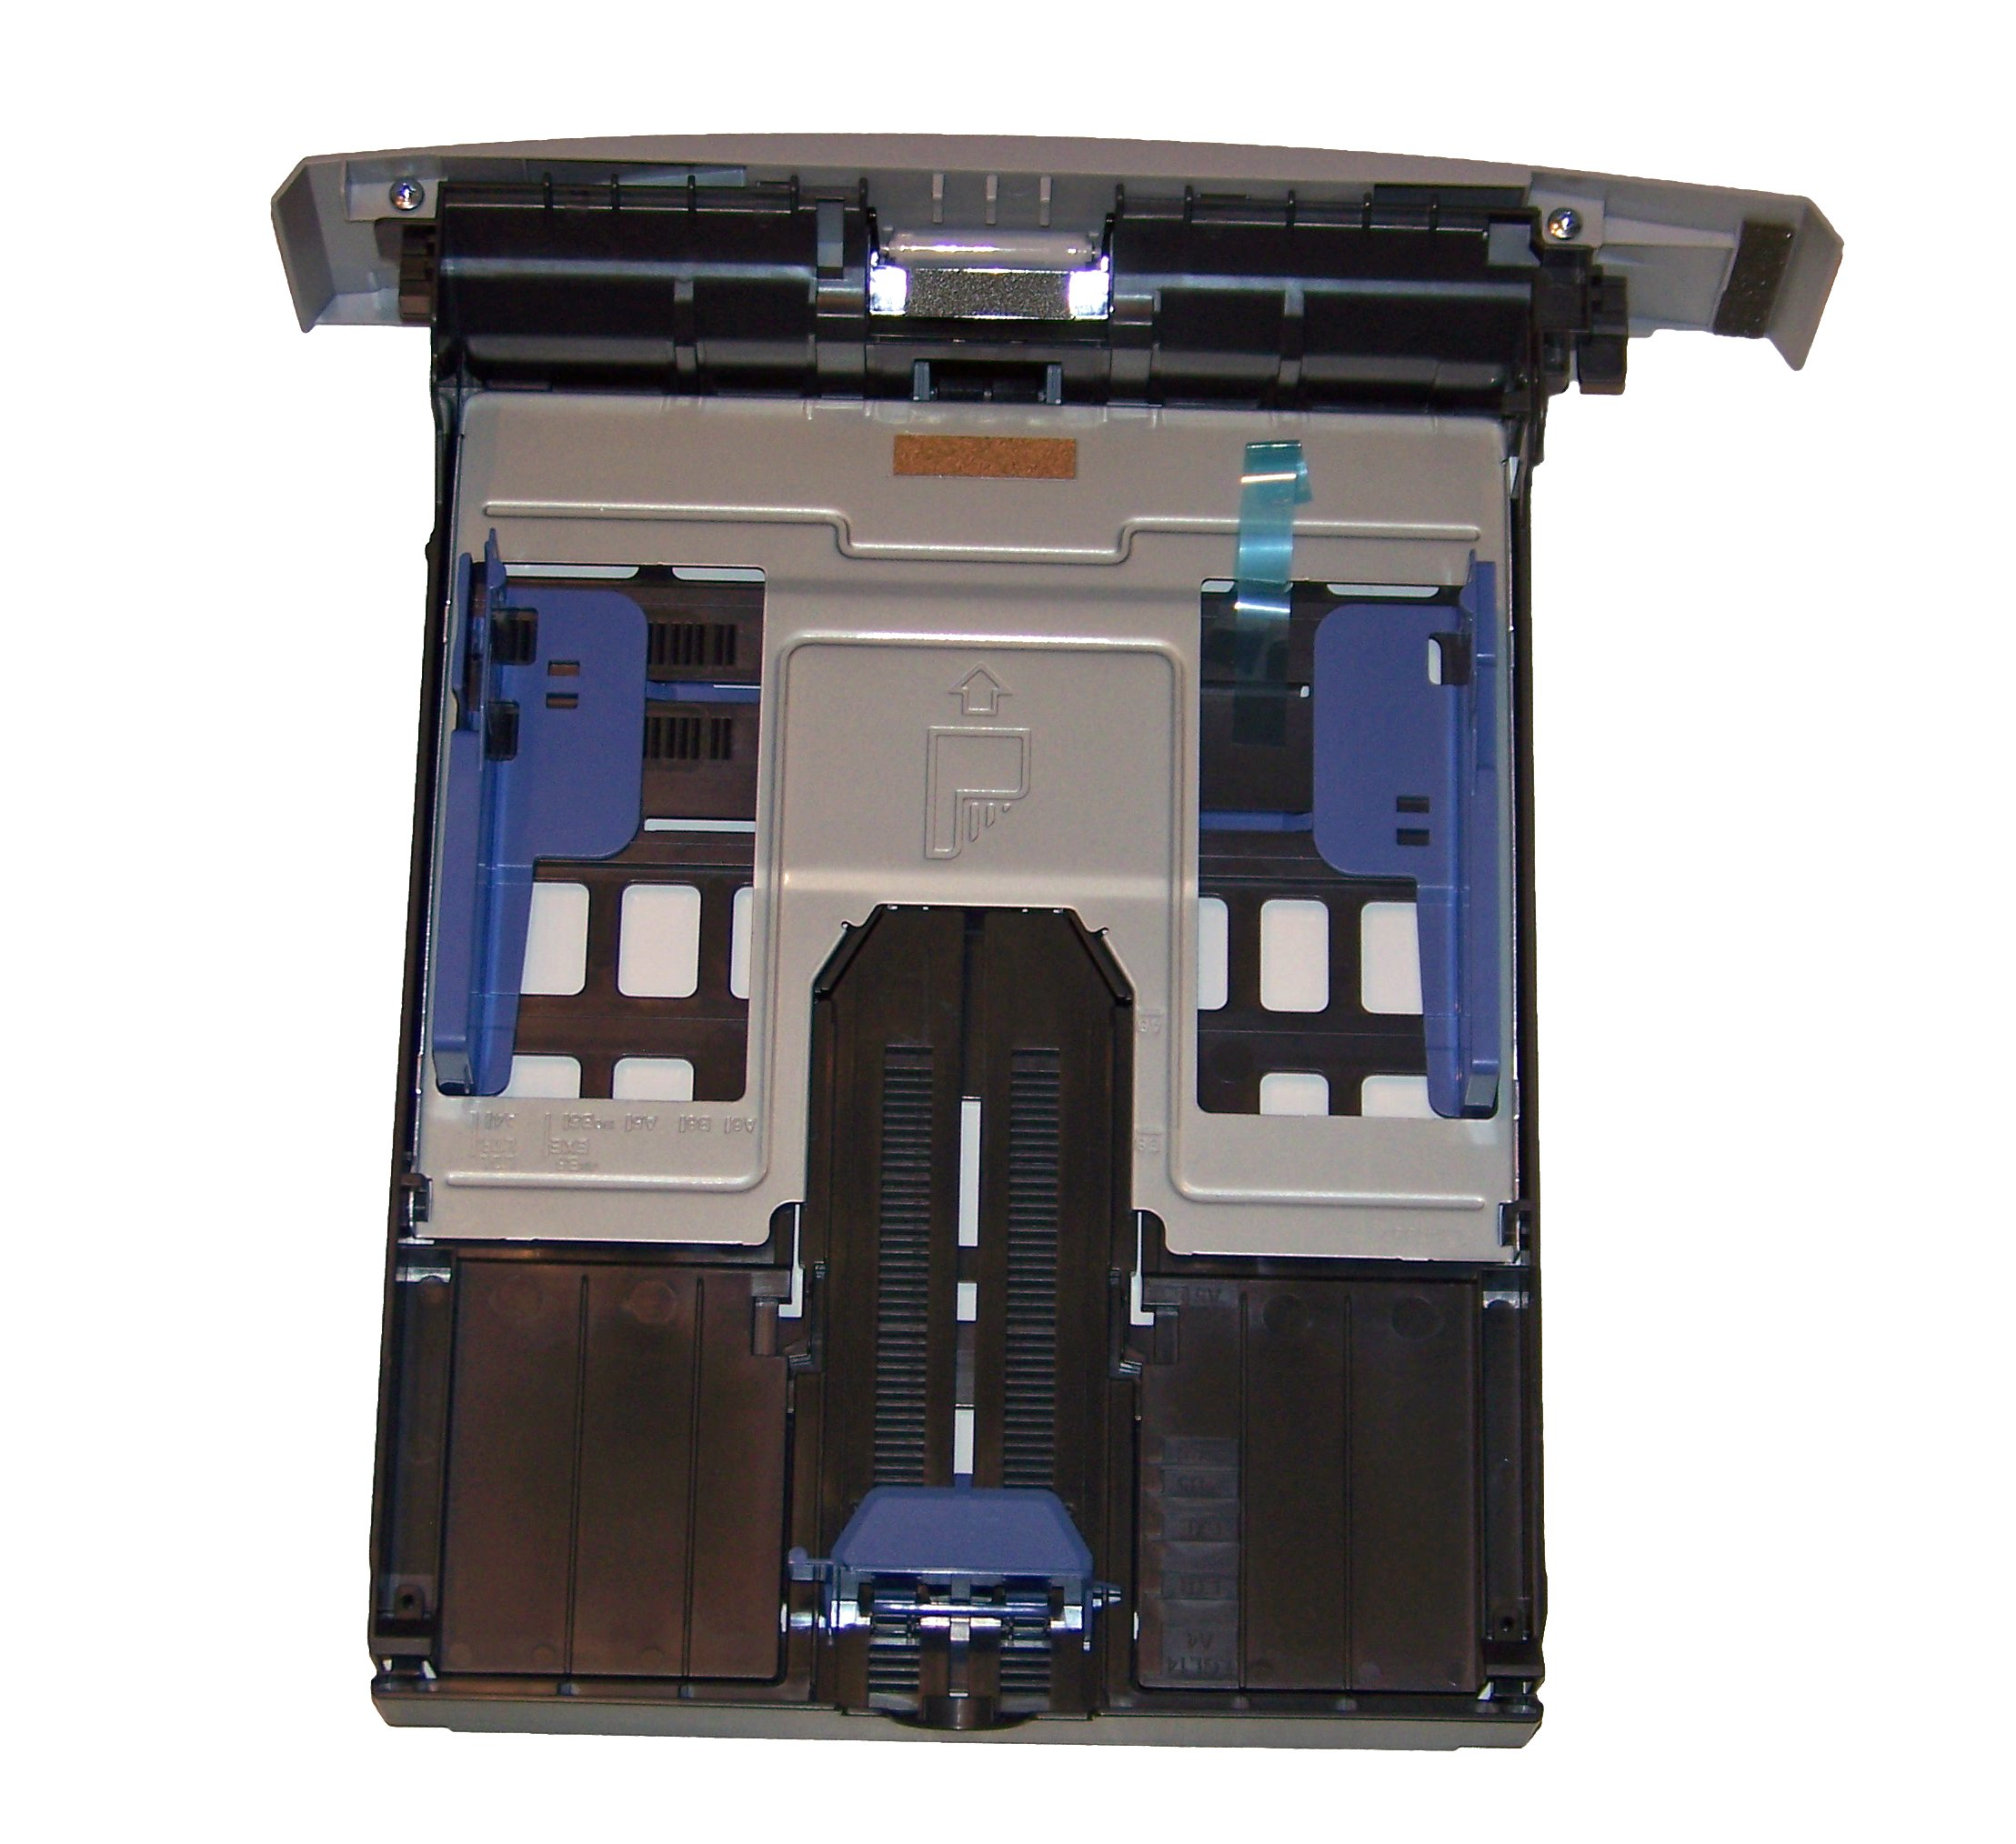 Brother 250 Page Paper Cassette - MFC7220, MFC-7220, MFC7225N, MFC-7225N, MFC7420, MFC-7420, MFC7820N, MFC-7820N